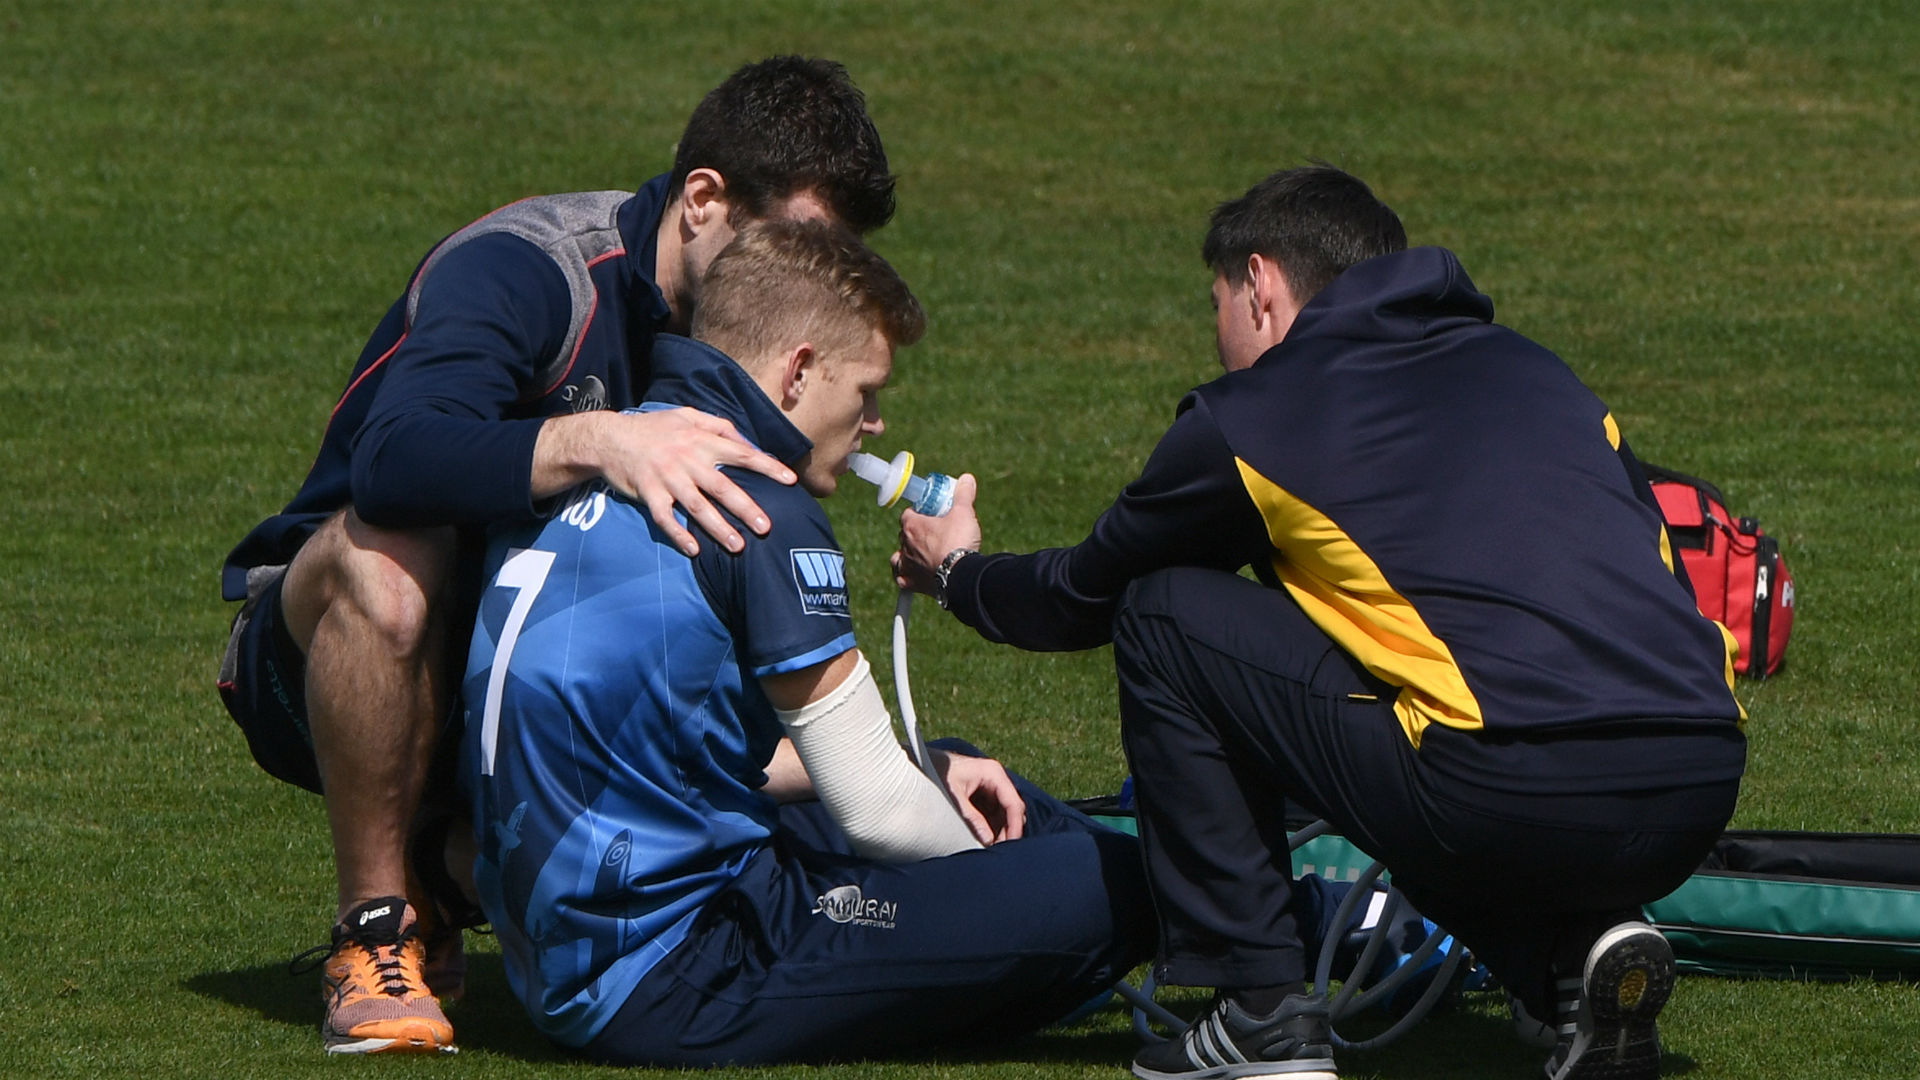 England World Cup hopeful Billings suffers injury blow